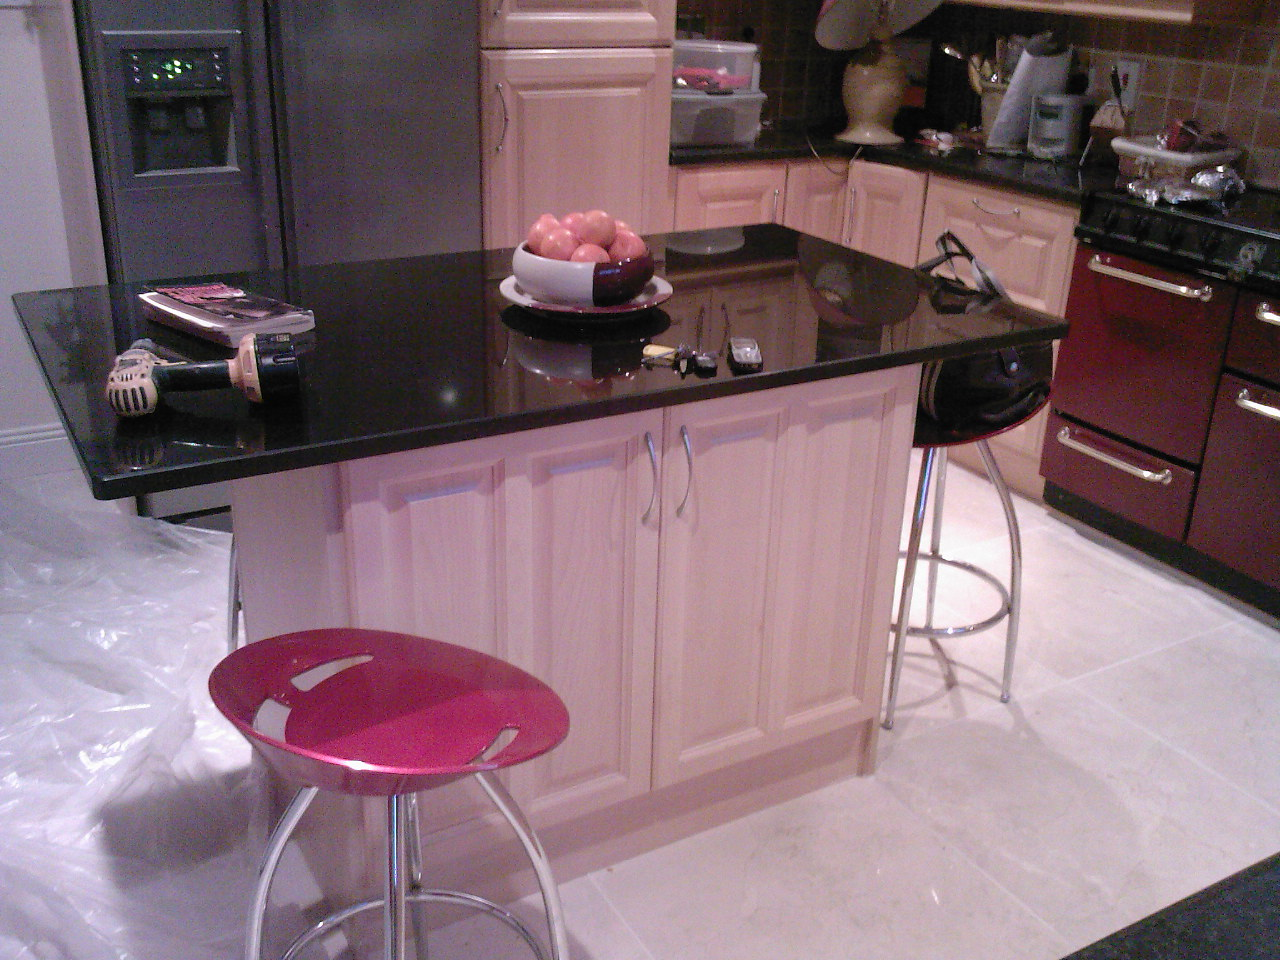 granite kitchen island designs kitchen island designs Granite kitchen island designs